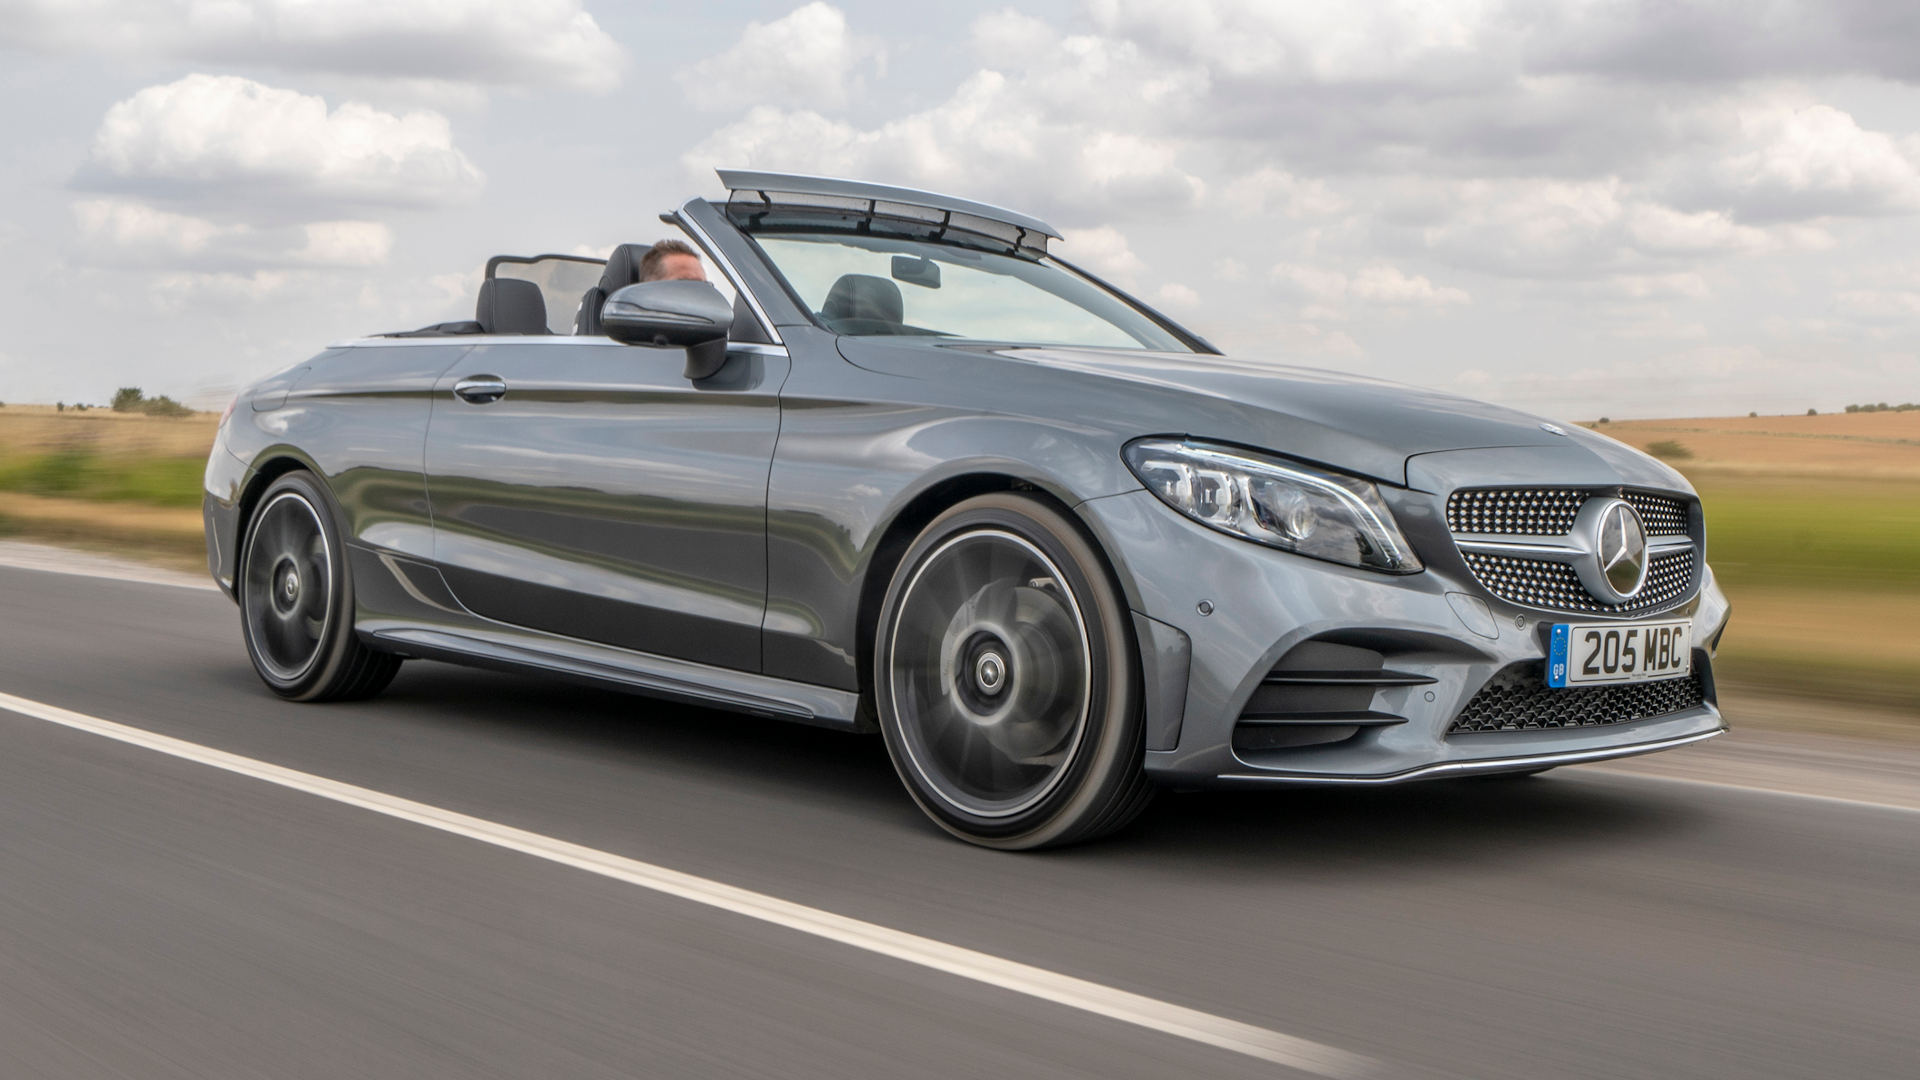 Mercedes Benz C Class Convertible 2018 Review Auto Trader Uk